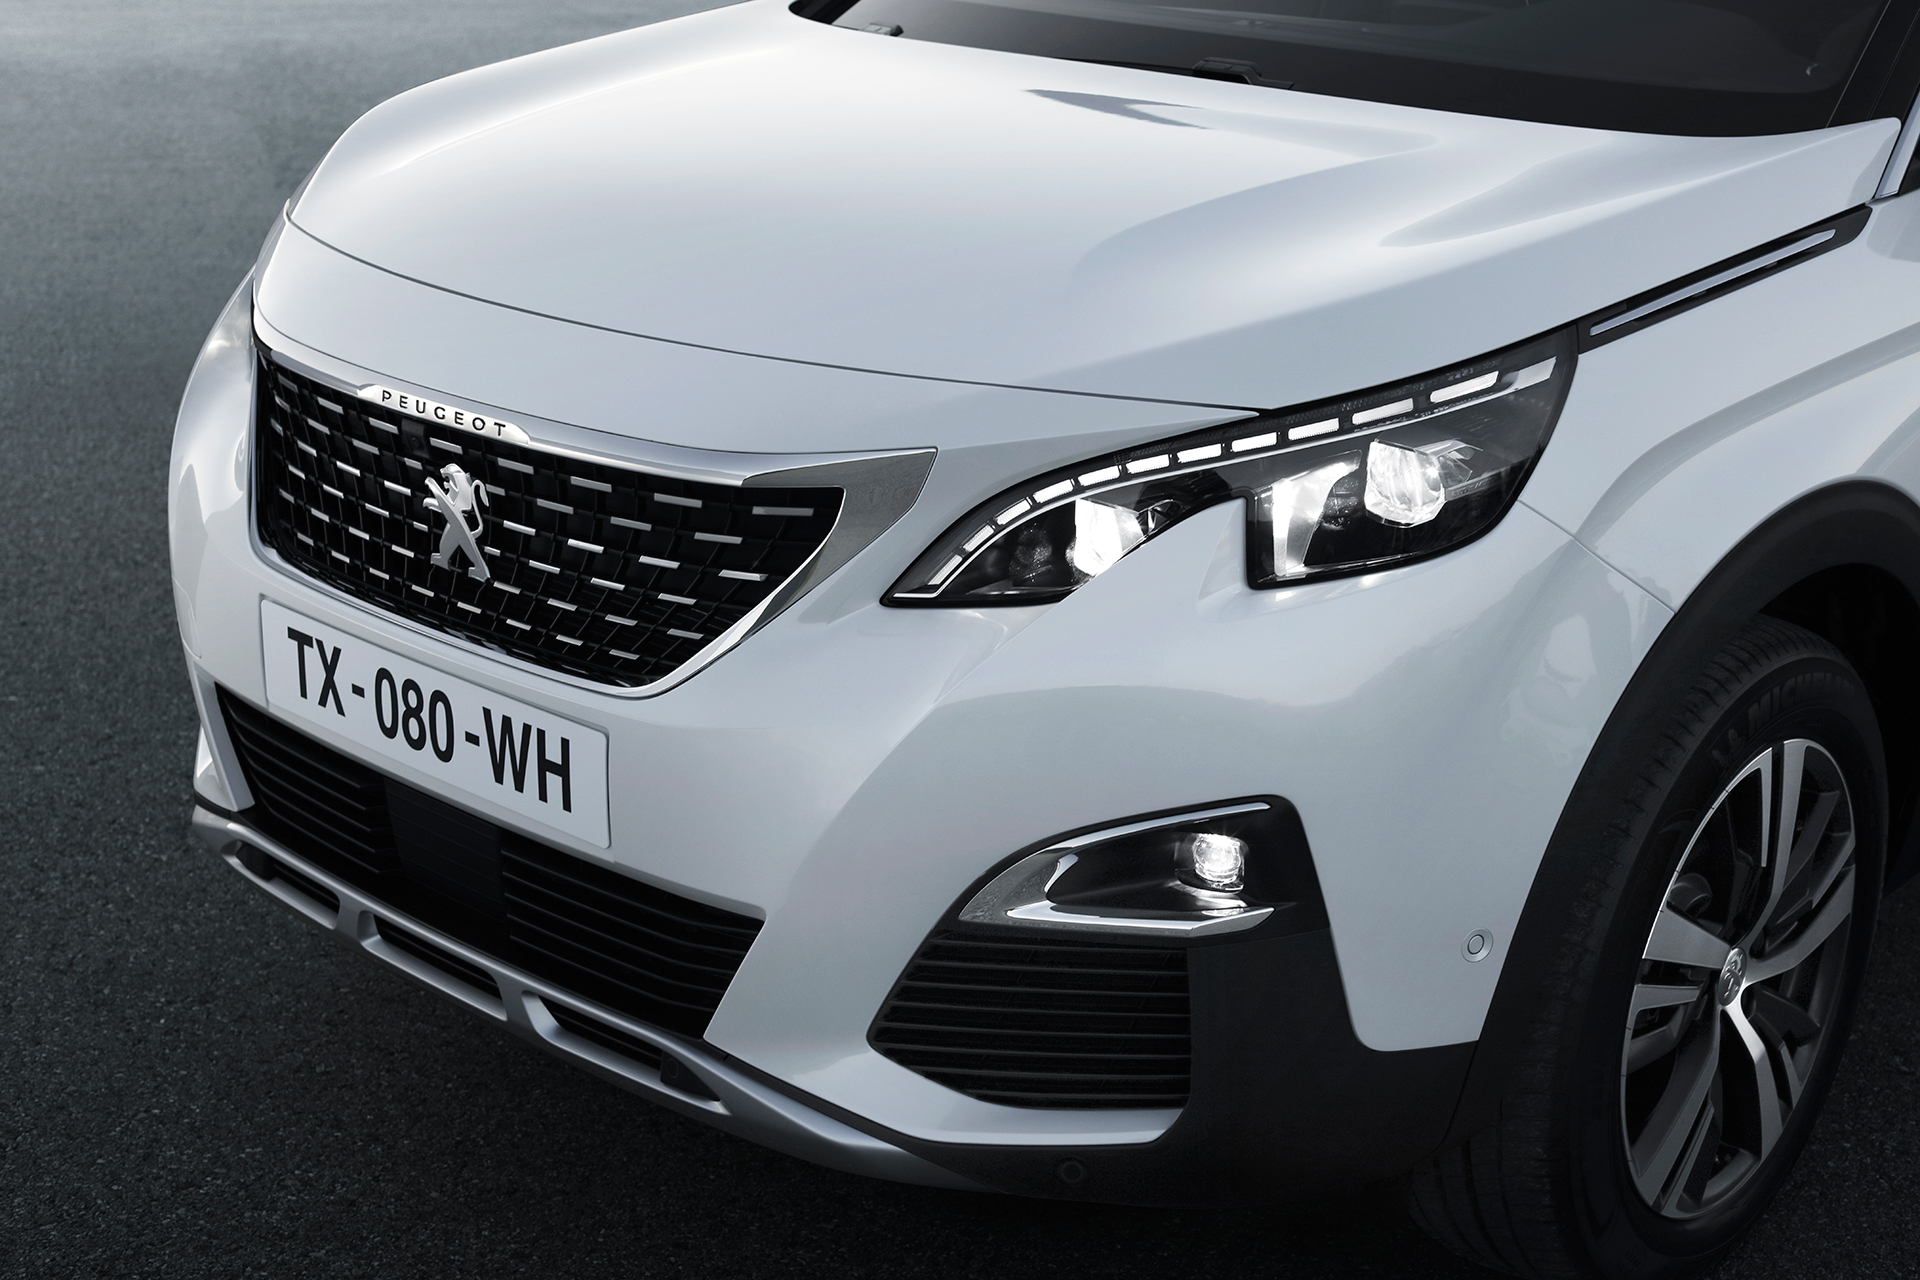 Peugeot 3008 - GT Line - 2016 - optique avant / front light